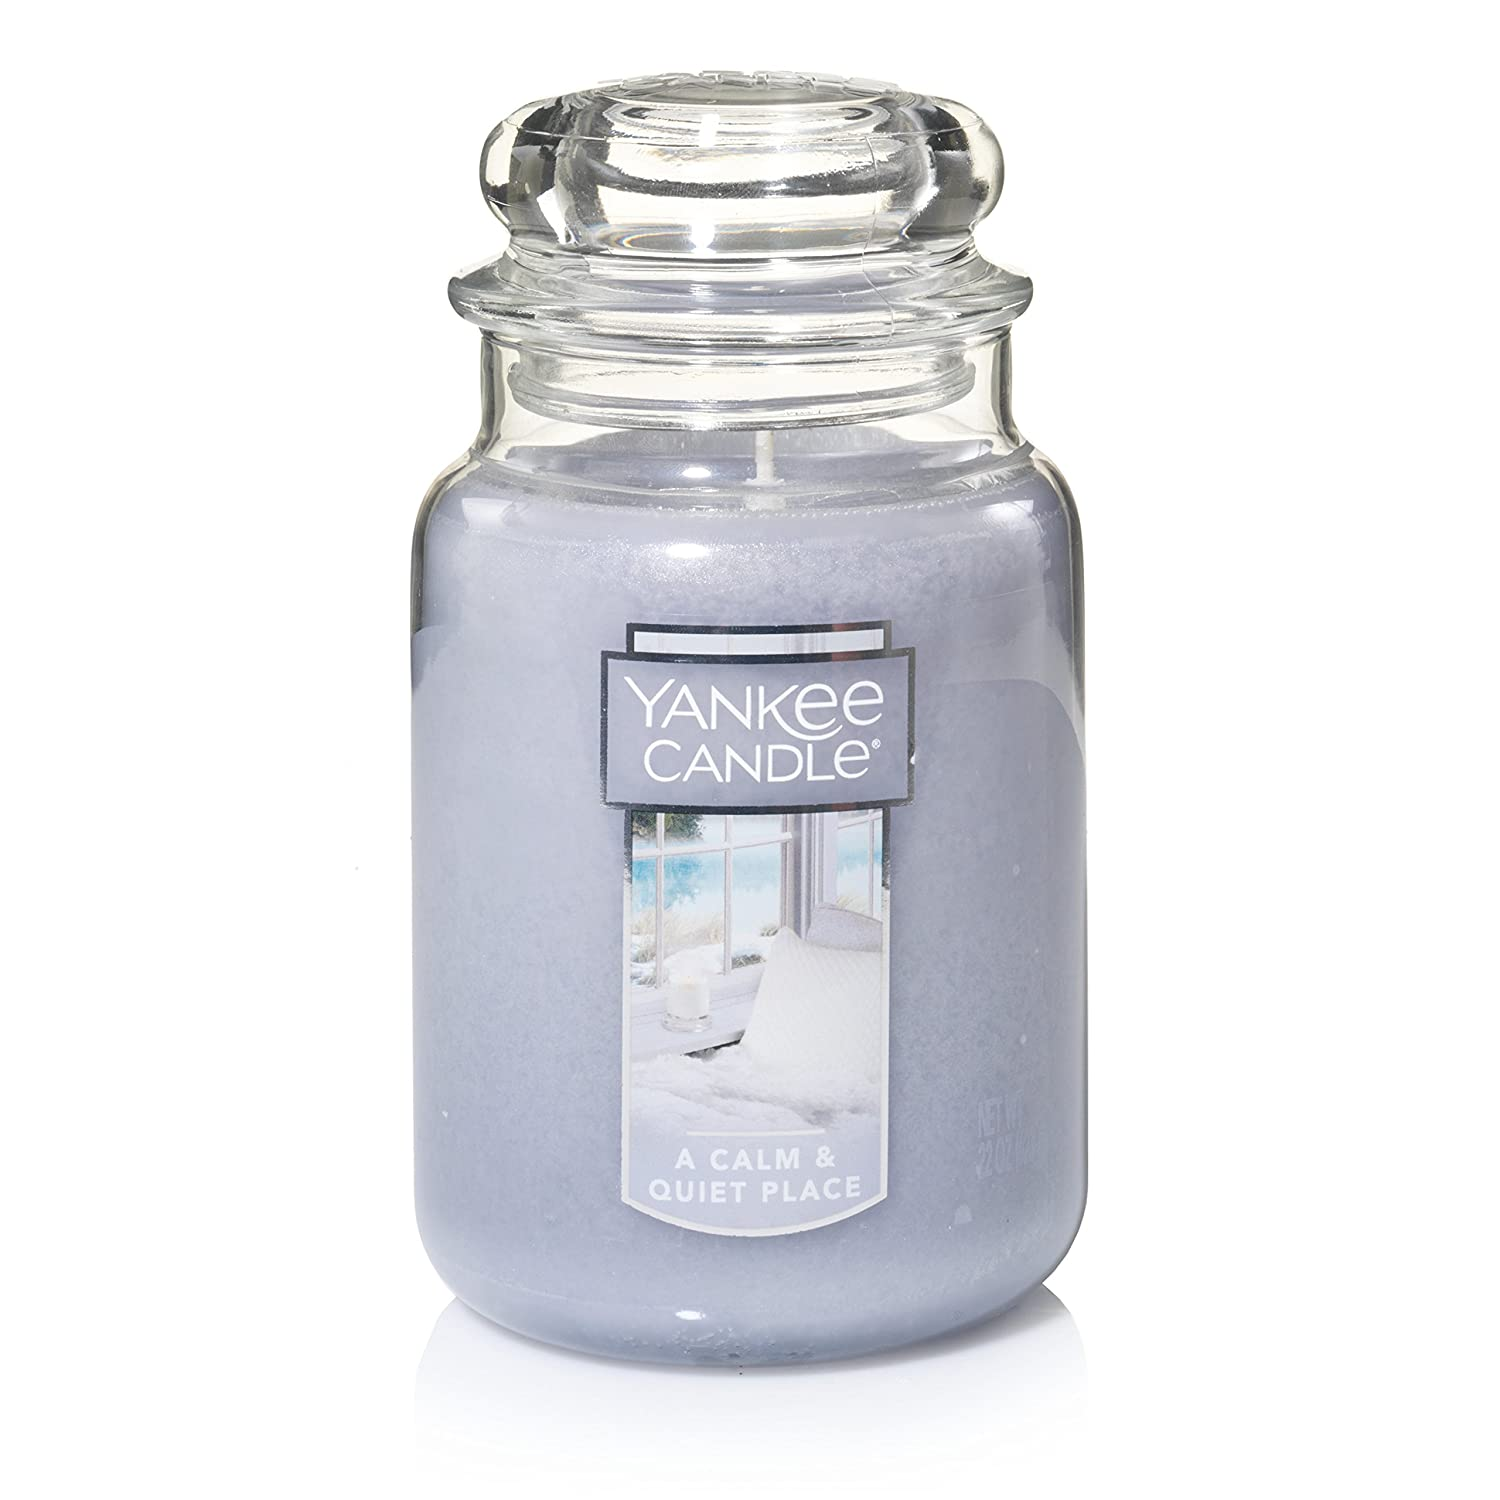 Yankee Candle Large 2-Wick Tumbler Candle, A Calm & Quiet Place 1578713Z